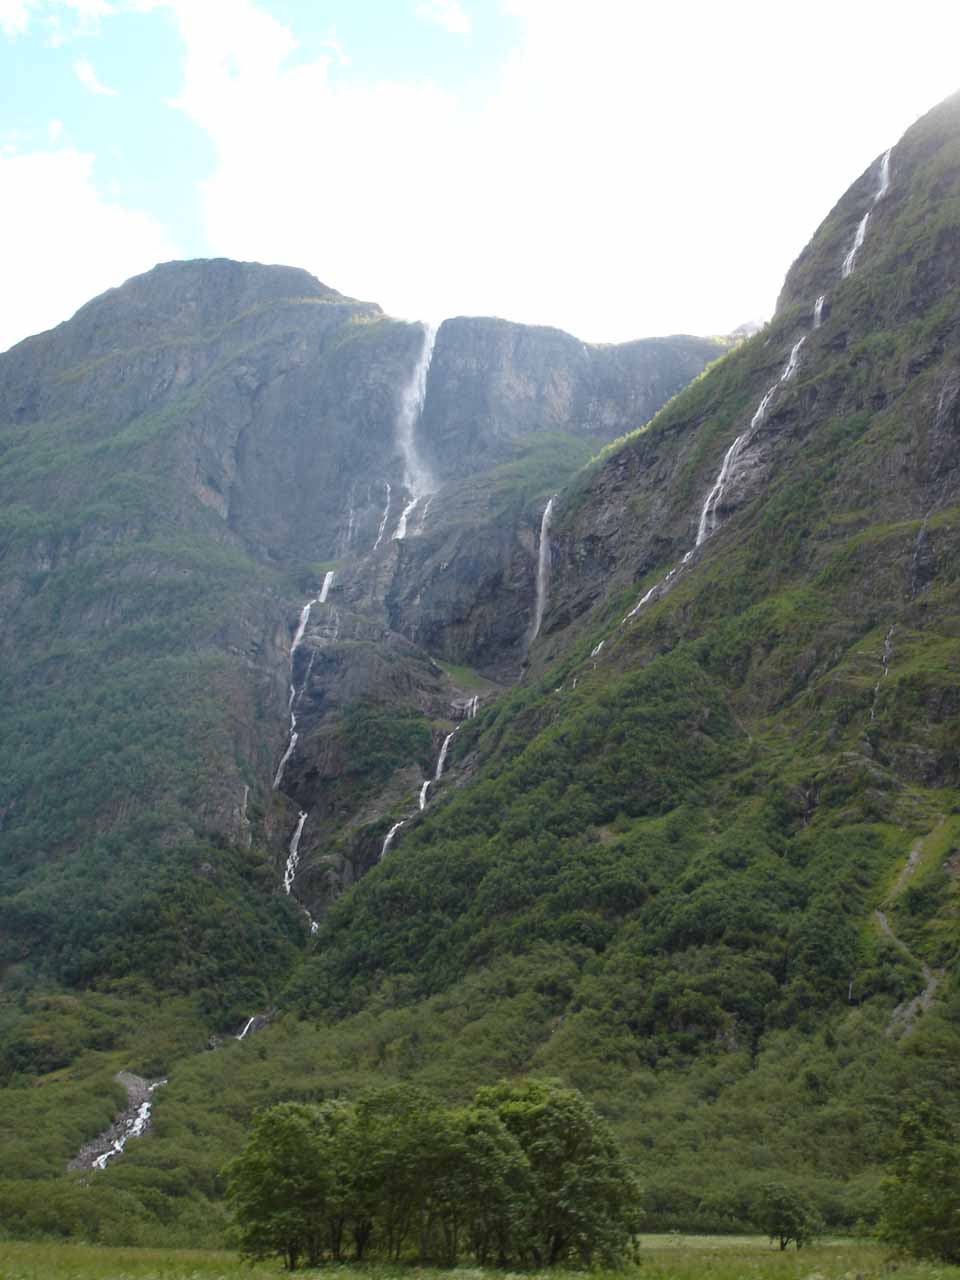 Angled view of Kjelfossen as we were approaching it from within Nærøydal Valley